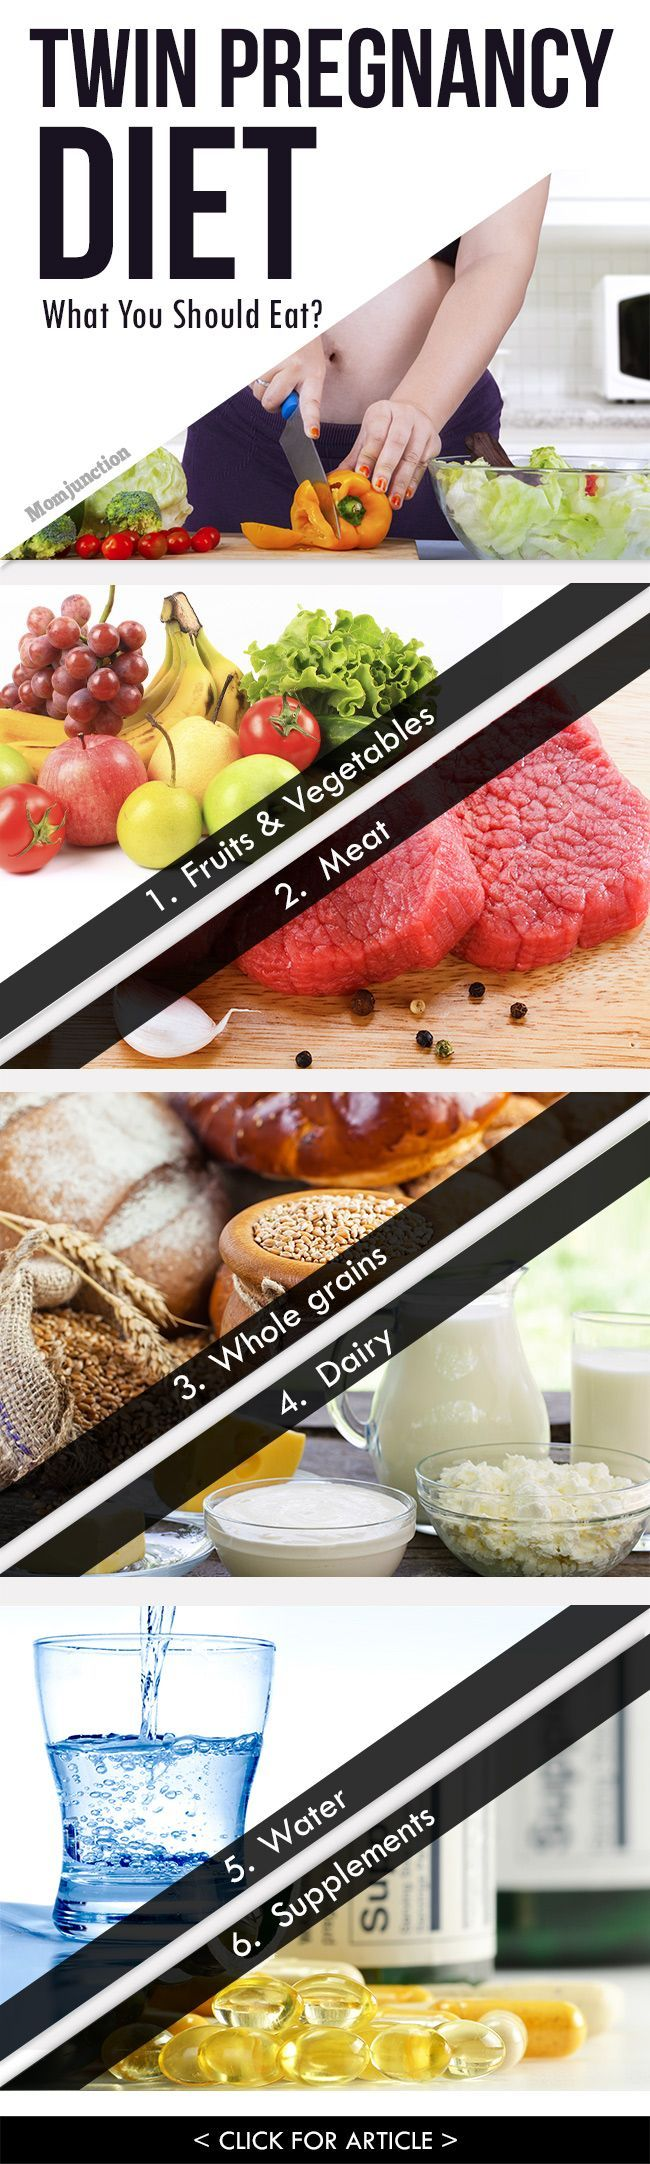 Twin Pregnancy Diet – What You Should Eat? So, let's look at what this carbohydrate-controlled diet demands.